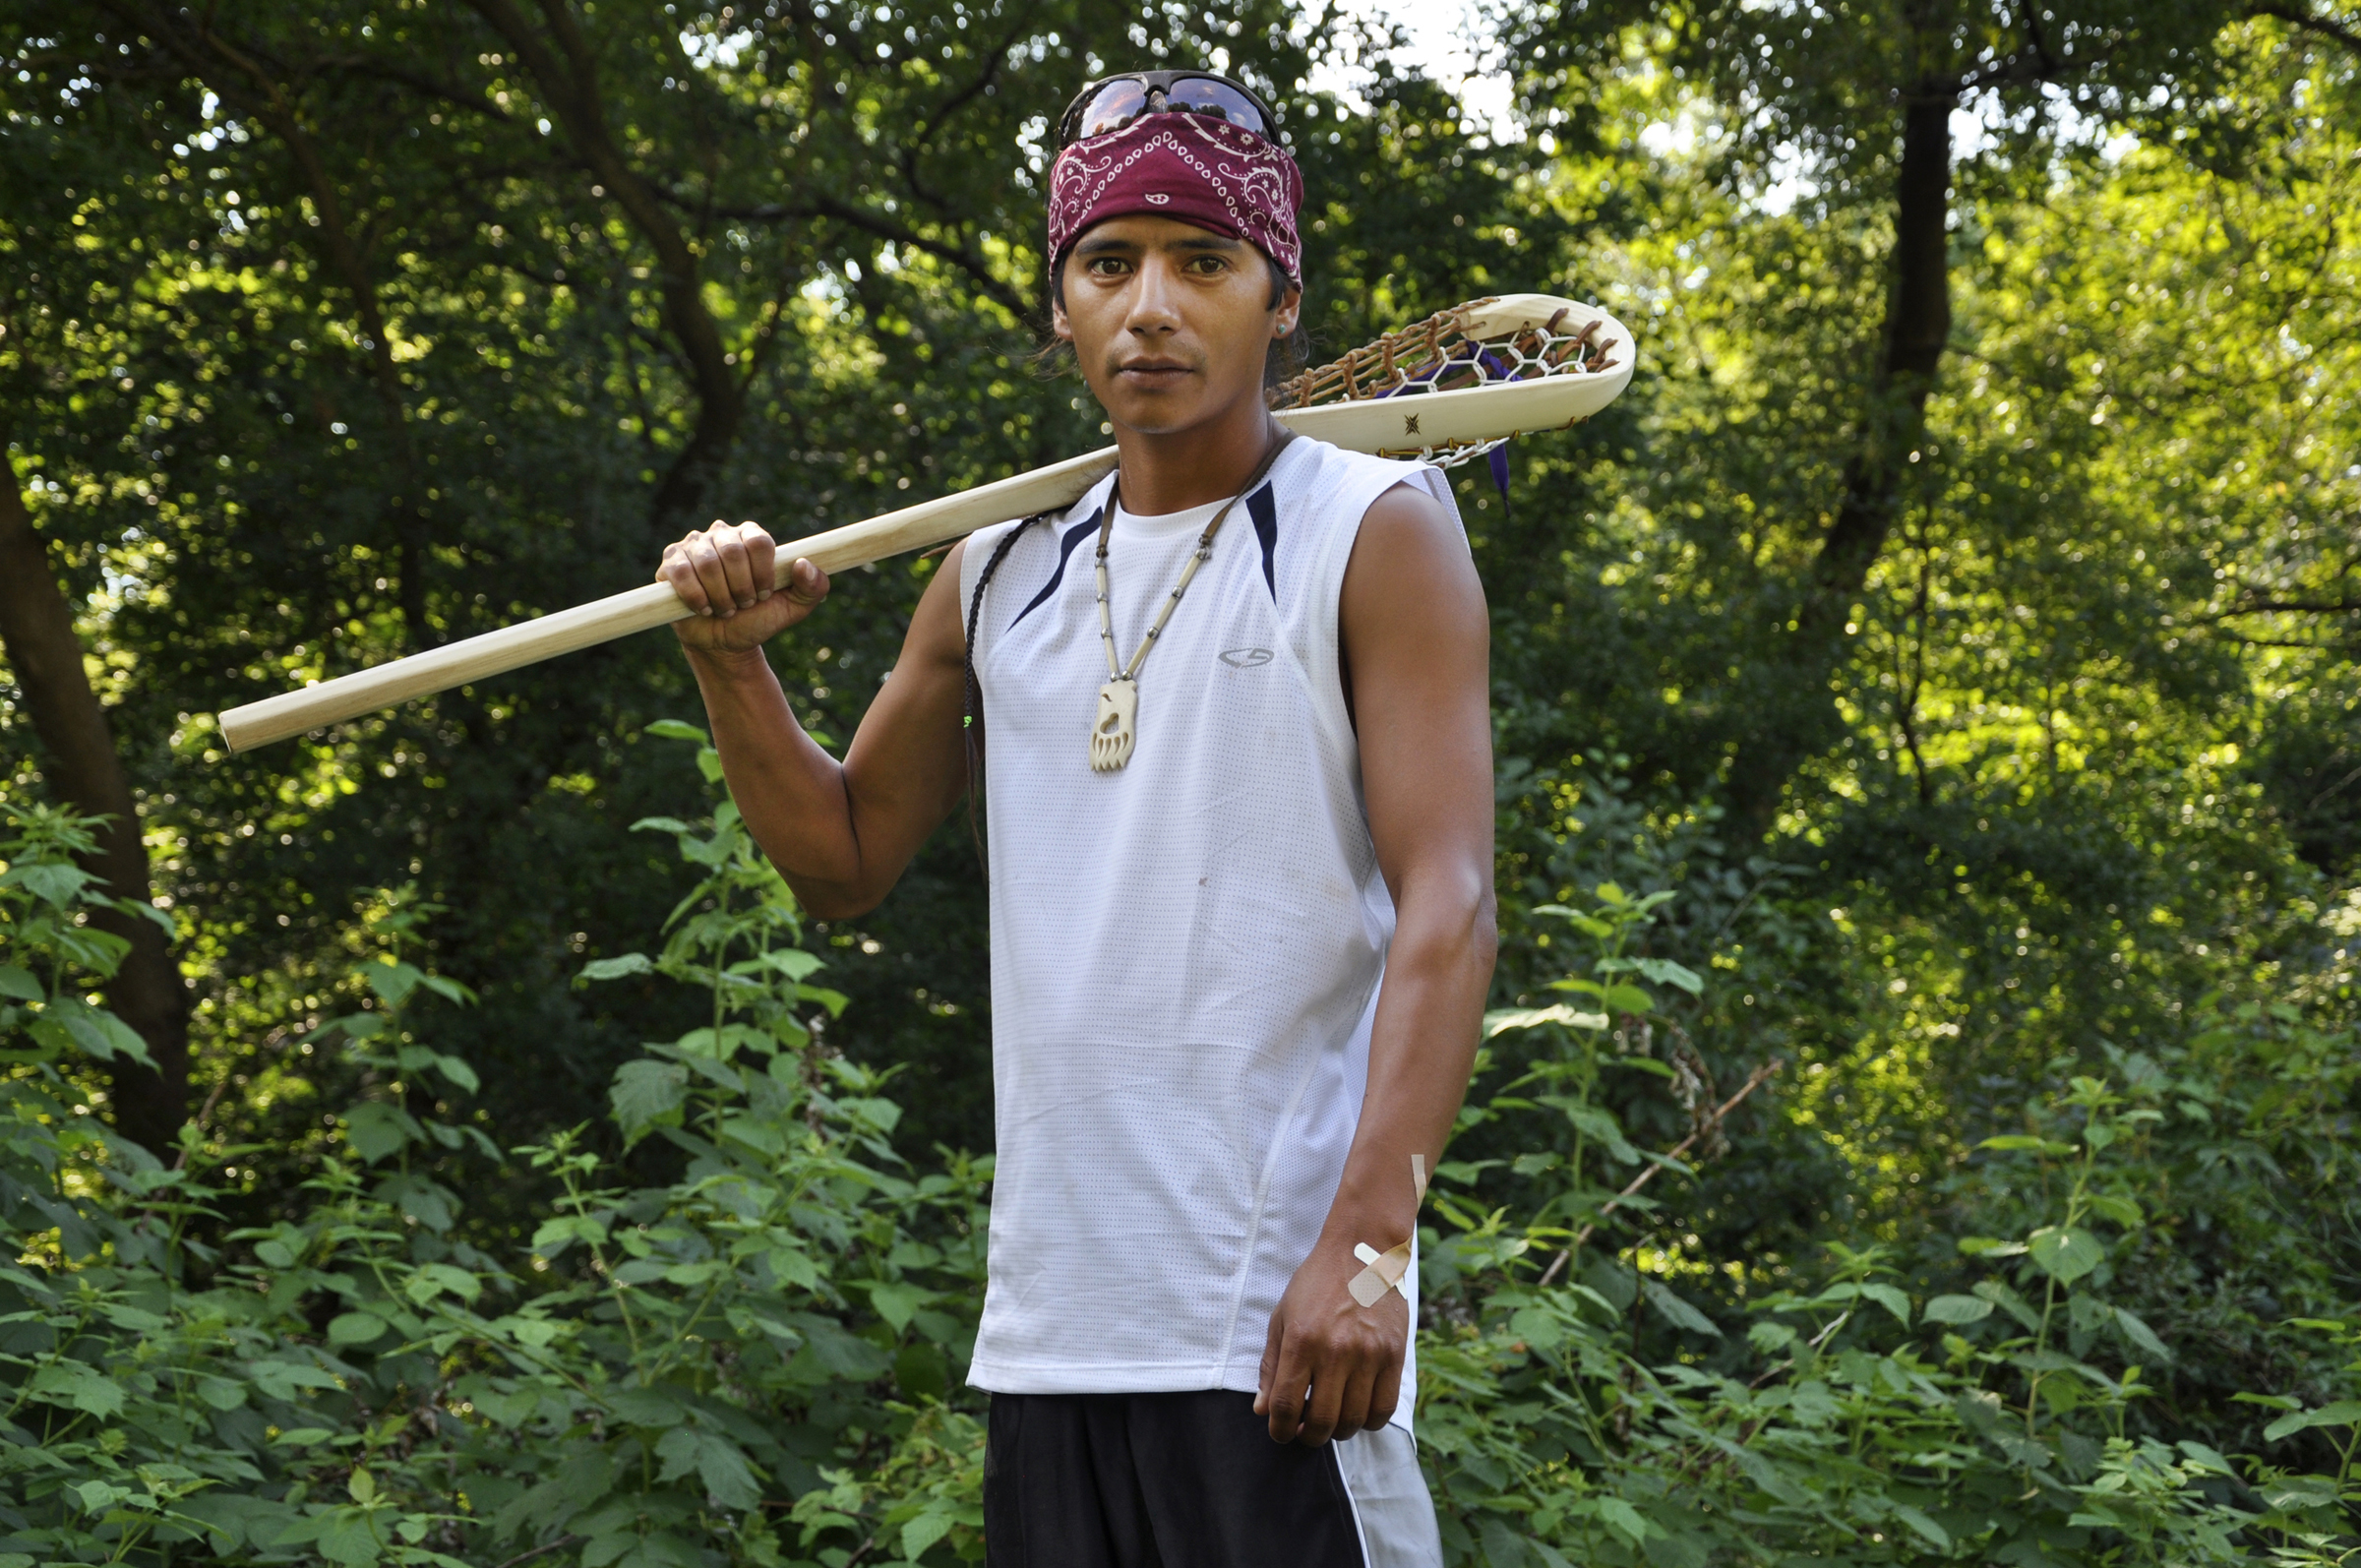 John Parsons holds a traditional lacrosse stick at the Onondaga Nation. Living uneasily among Americans, many Iroquois still believe they're fighting for their own identity, Onondaga Nation, N.Y., July 19, 2010.